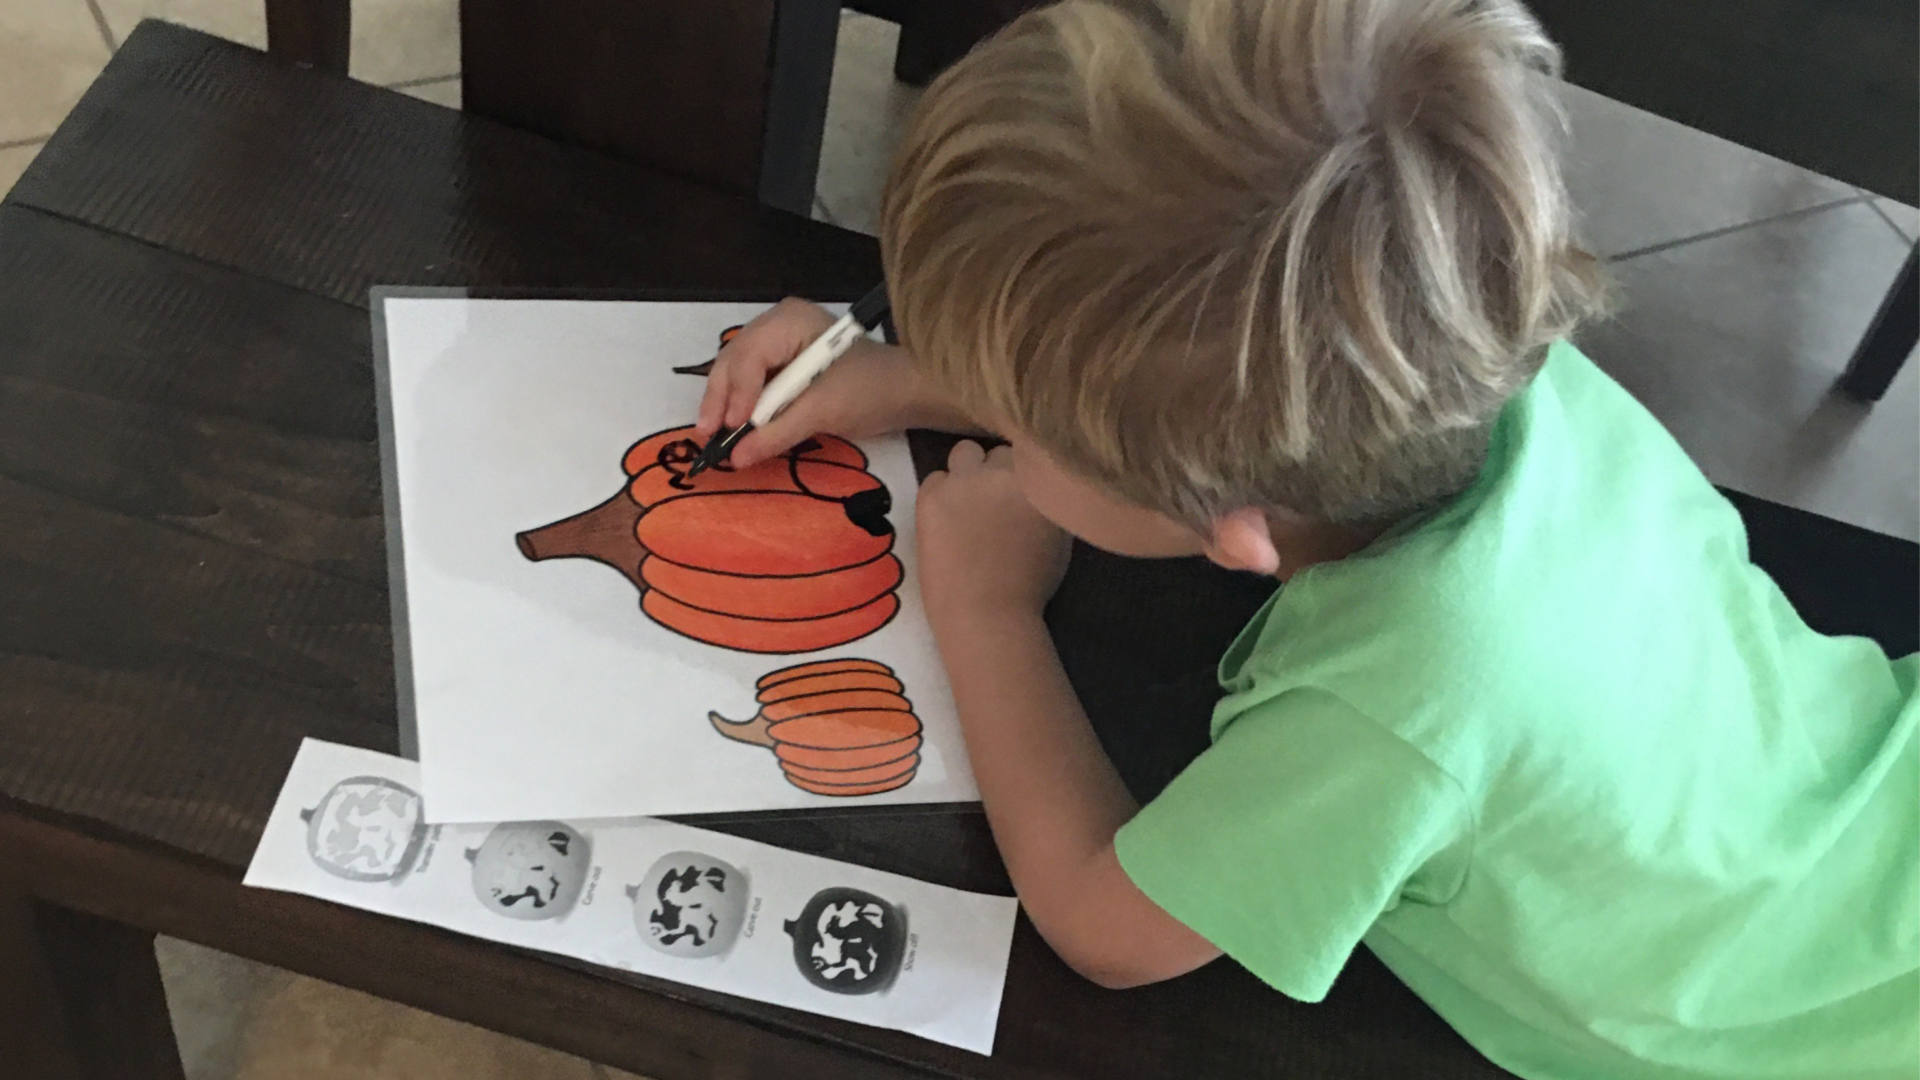 Laminate these free pumpkin coloring pages for an easy toddler Halloween activity: dry erase Jack-o-Lantern face drawing. #toddleractivity #preschoolactivity #halloweenactivity #pumpkin #halloween